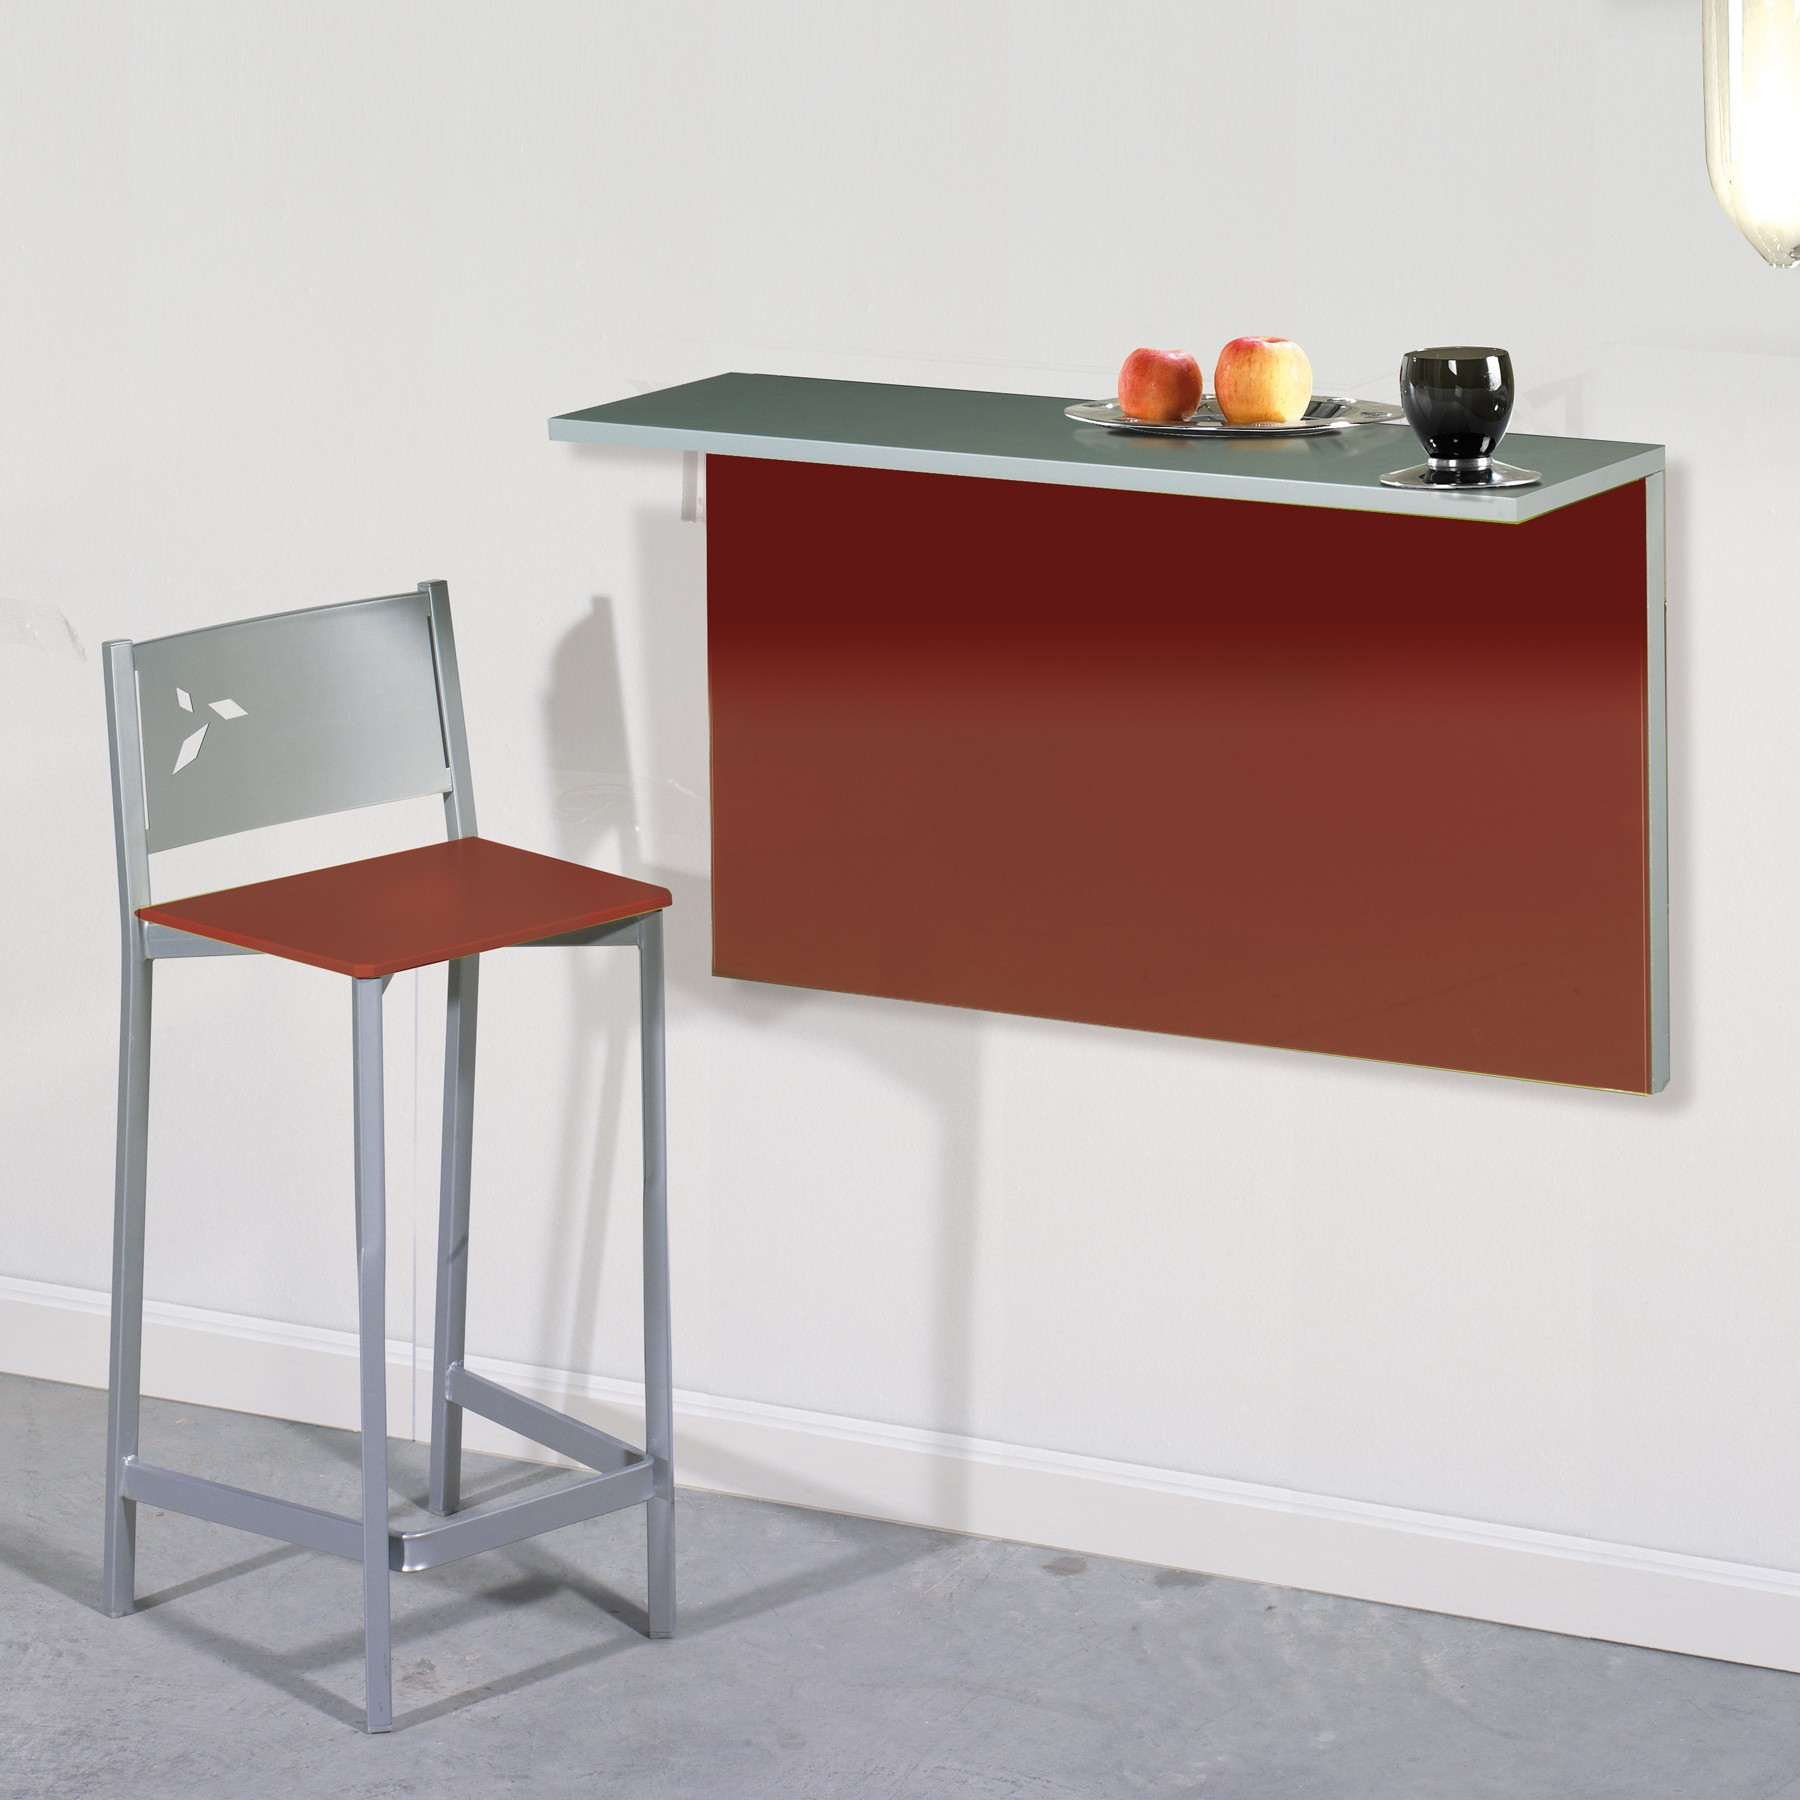 Mesa de cocina plegable de pared con 2 posiciones dkg for Mesa abatible pared cocina